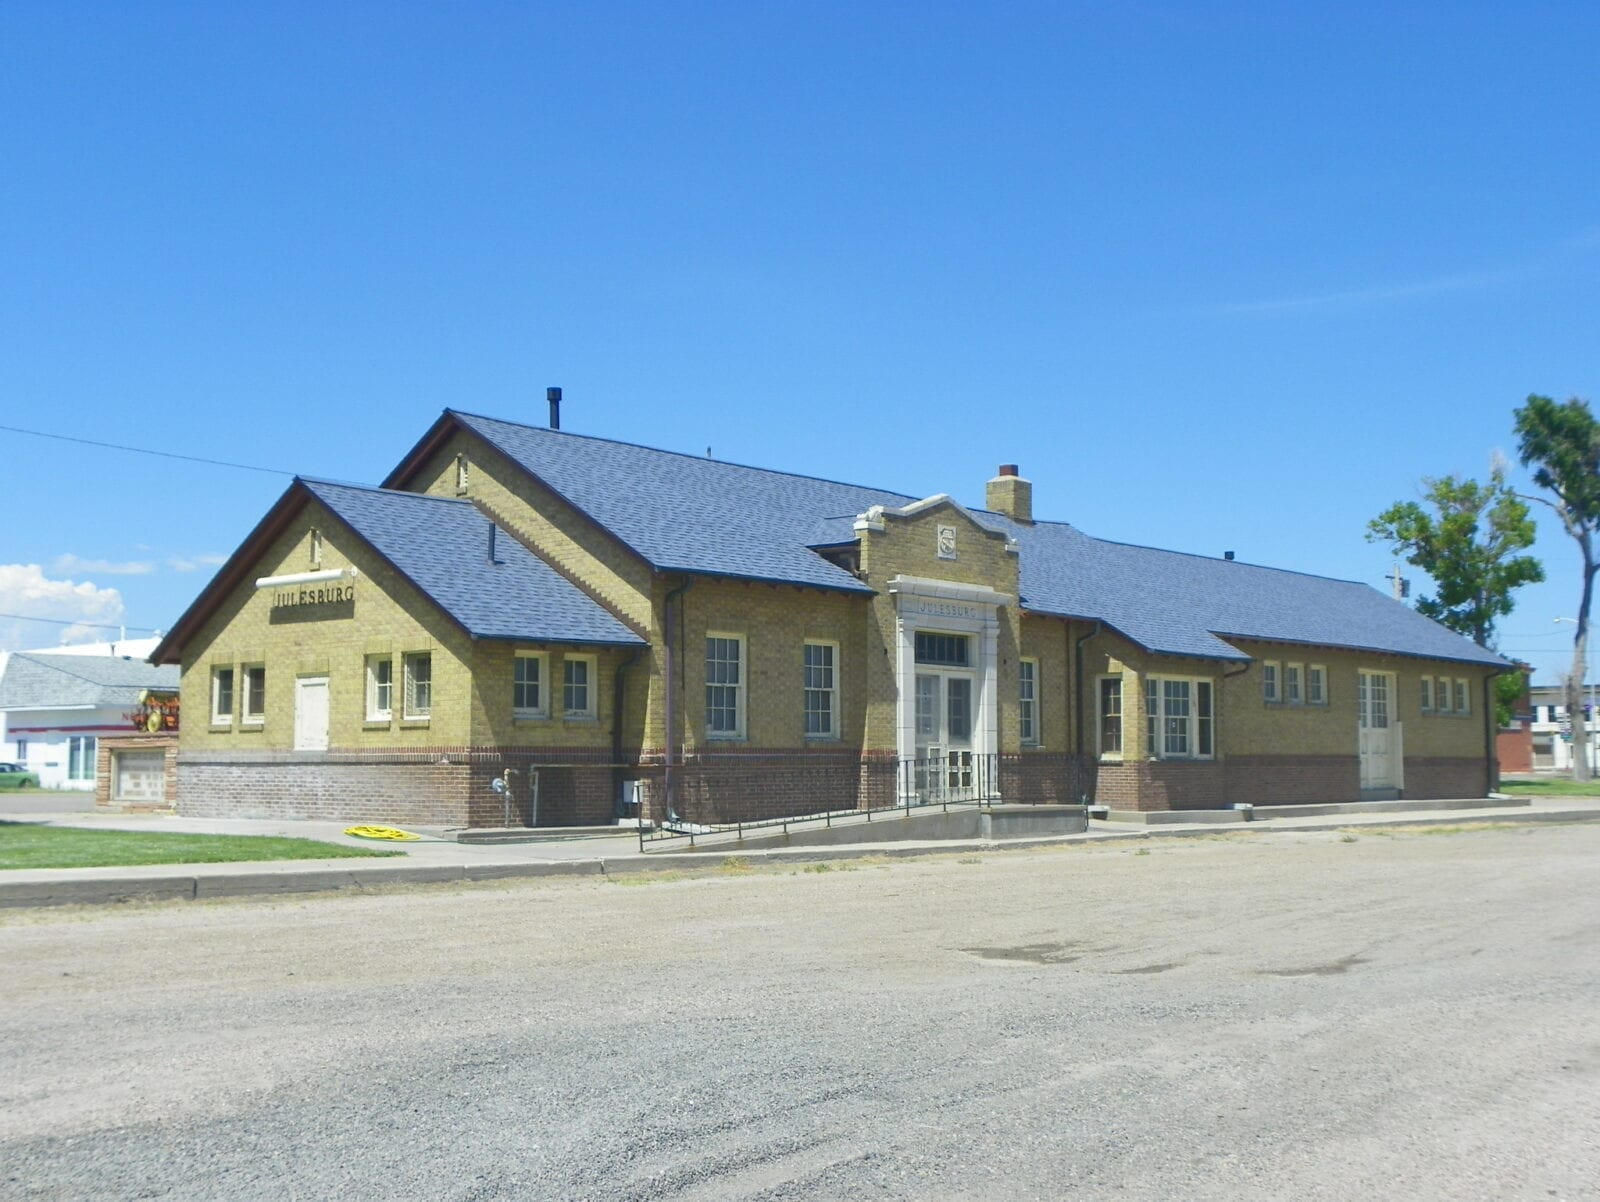 image of old railroad depot in Julseburg